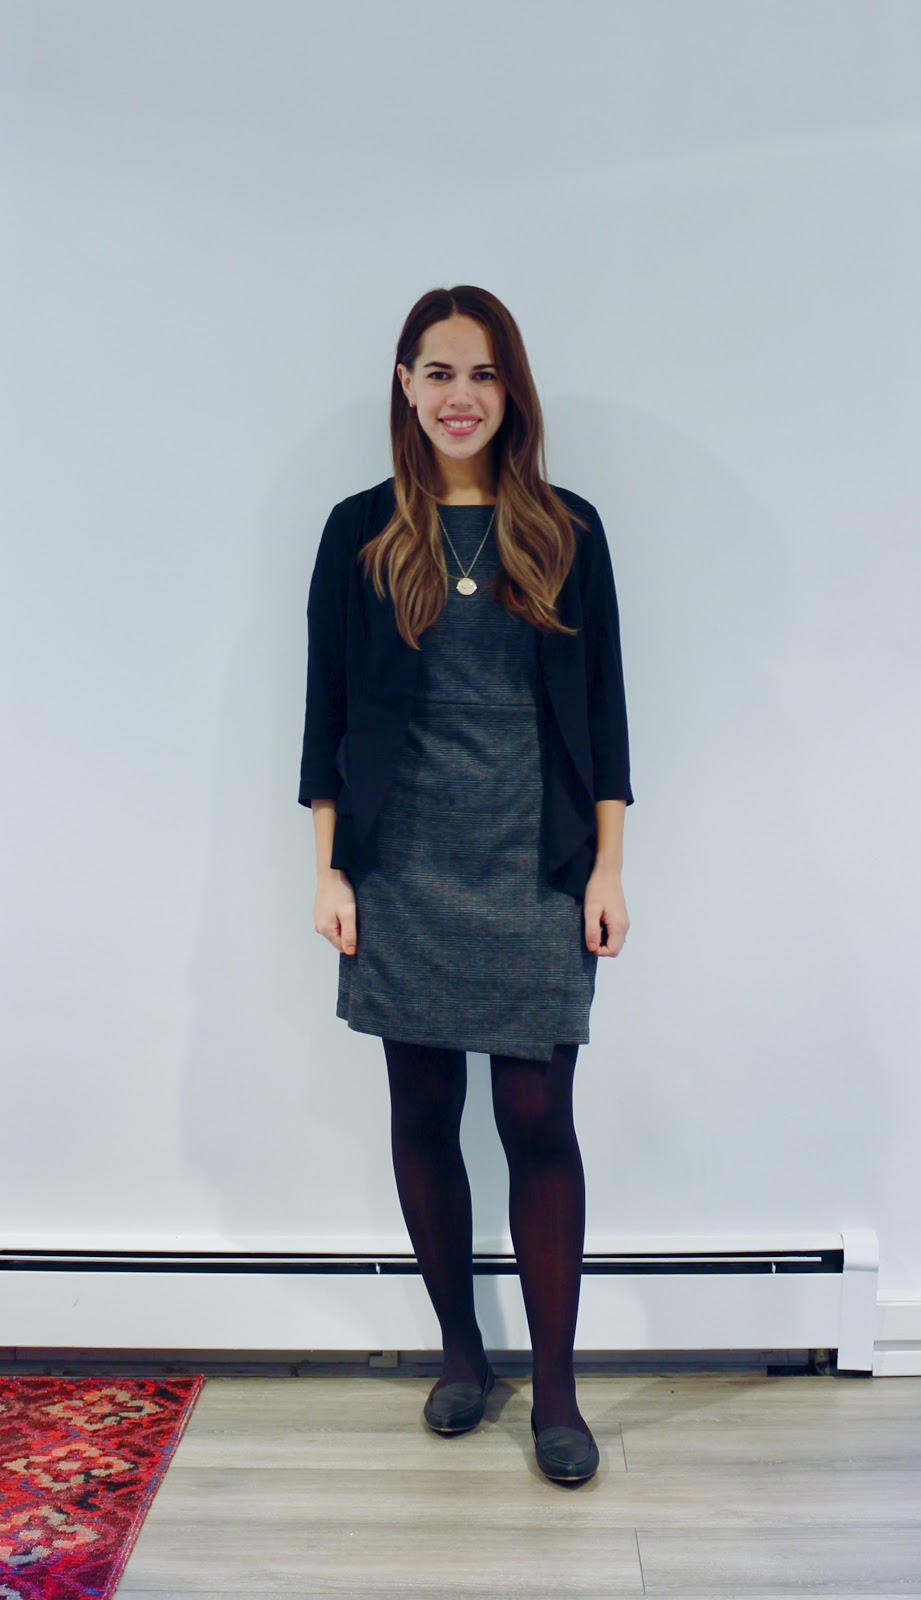 Jules in Flats - Plaid Shift Dress (Business Casual Fall Workwear on a Budget)